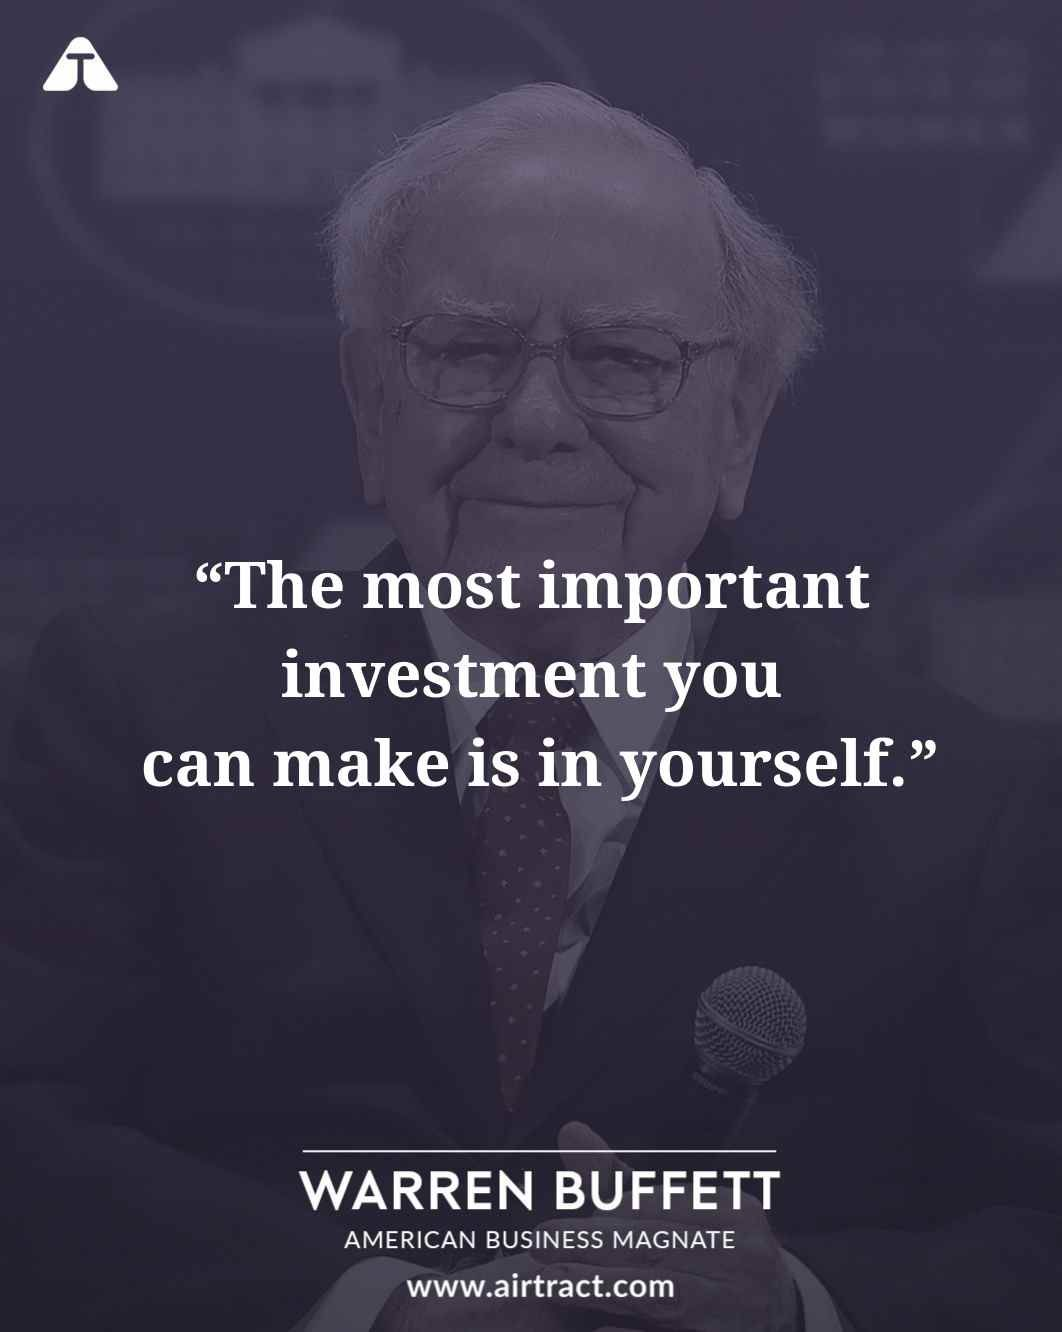 The Most Important Investment You Can Make Is In Yourself Warren Buffett Warrenbuffett Warrenbuffettquotes Business Mot Life Quotes Warren Buffett Quotes